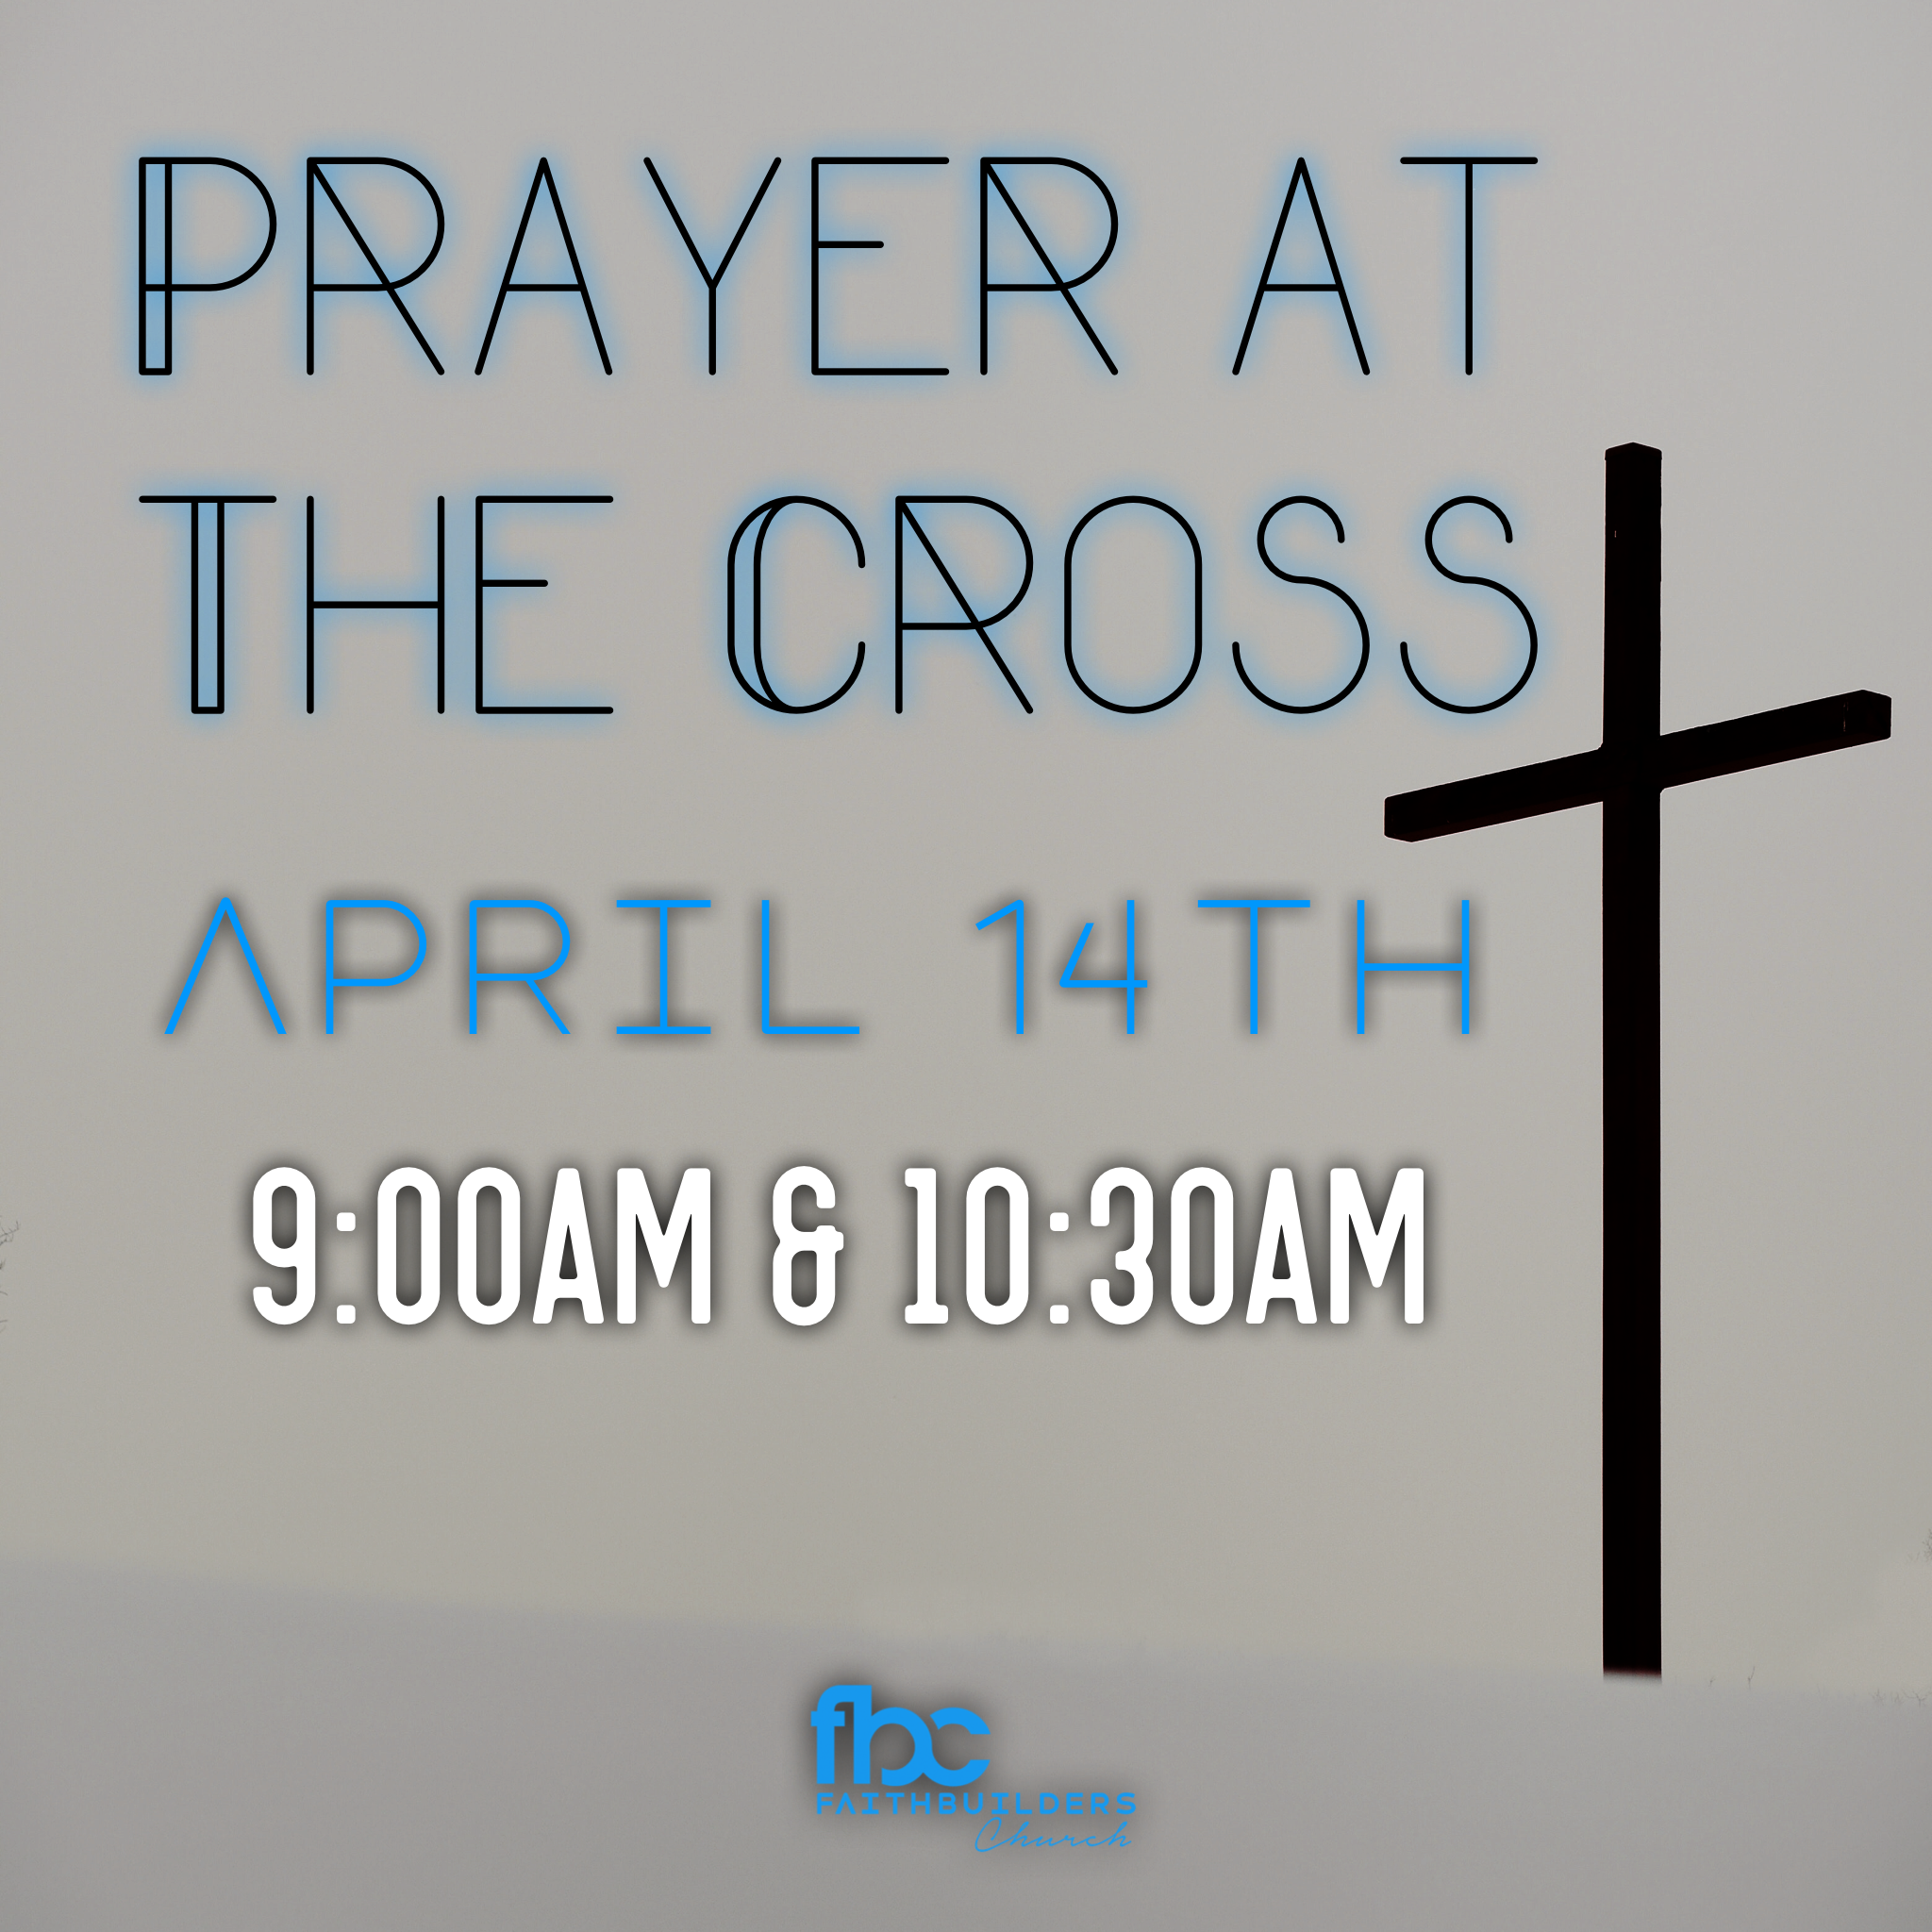 Prayer at the Cross - April 14th 9:00AM & 10:30AM